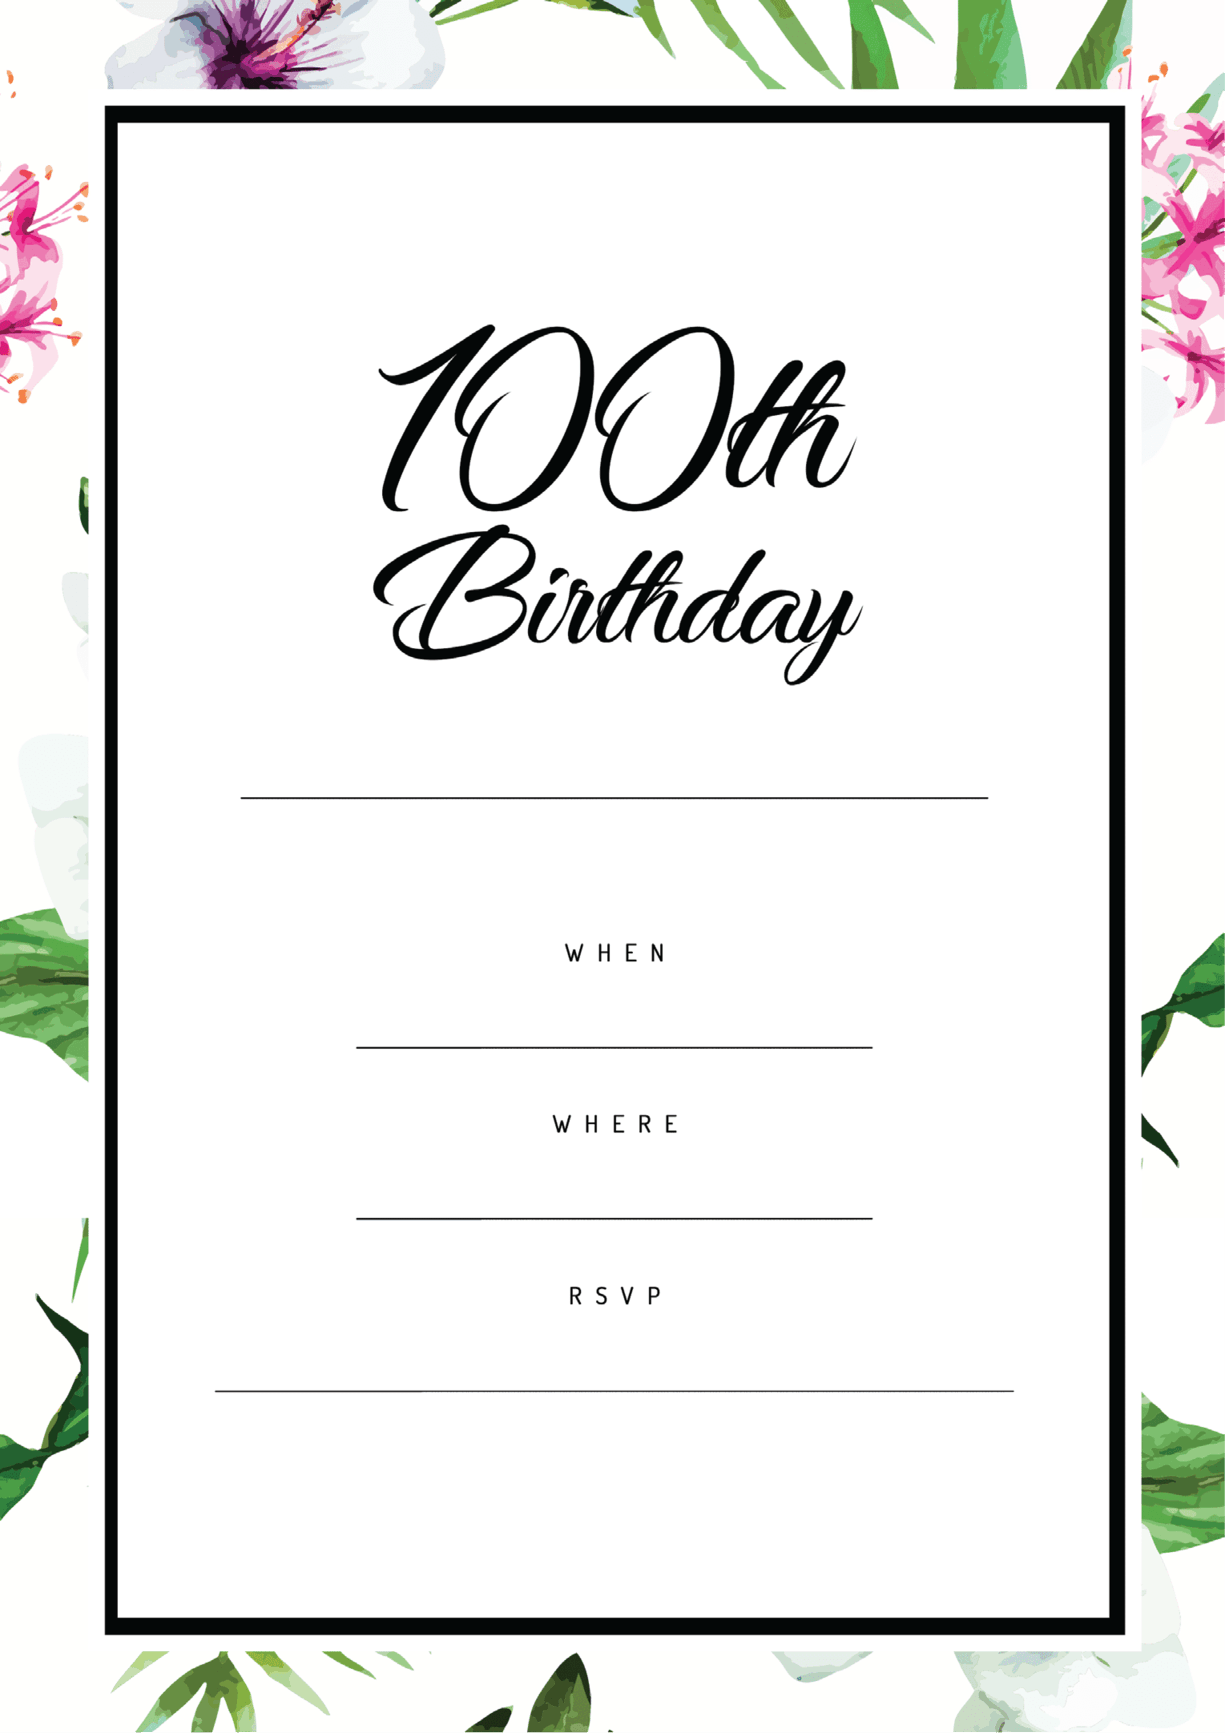 100th birthday party pink green floral design